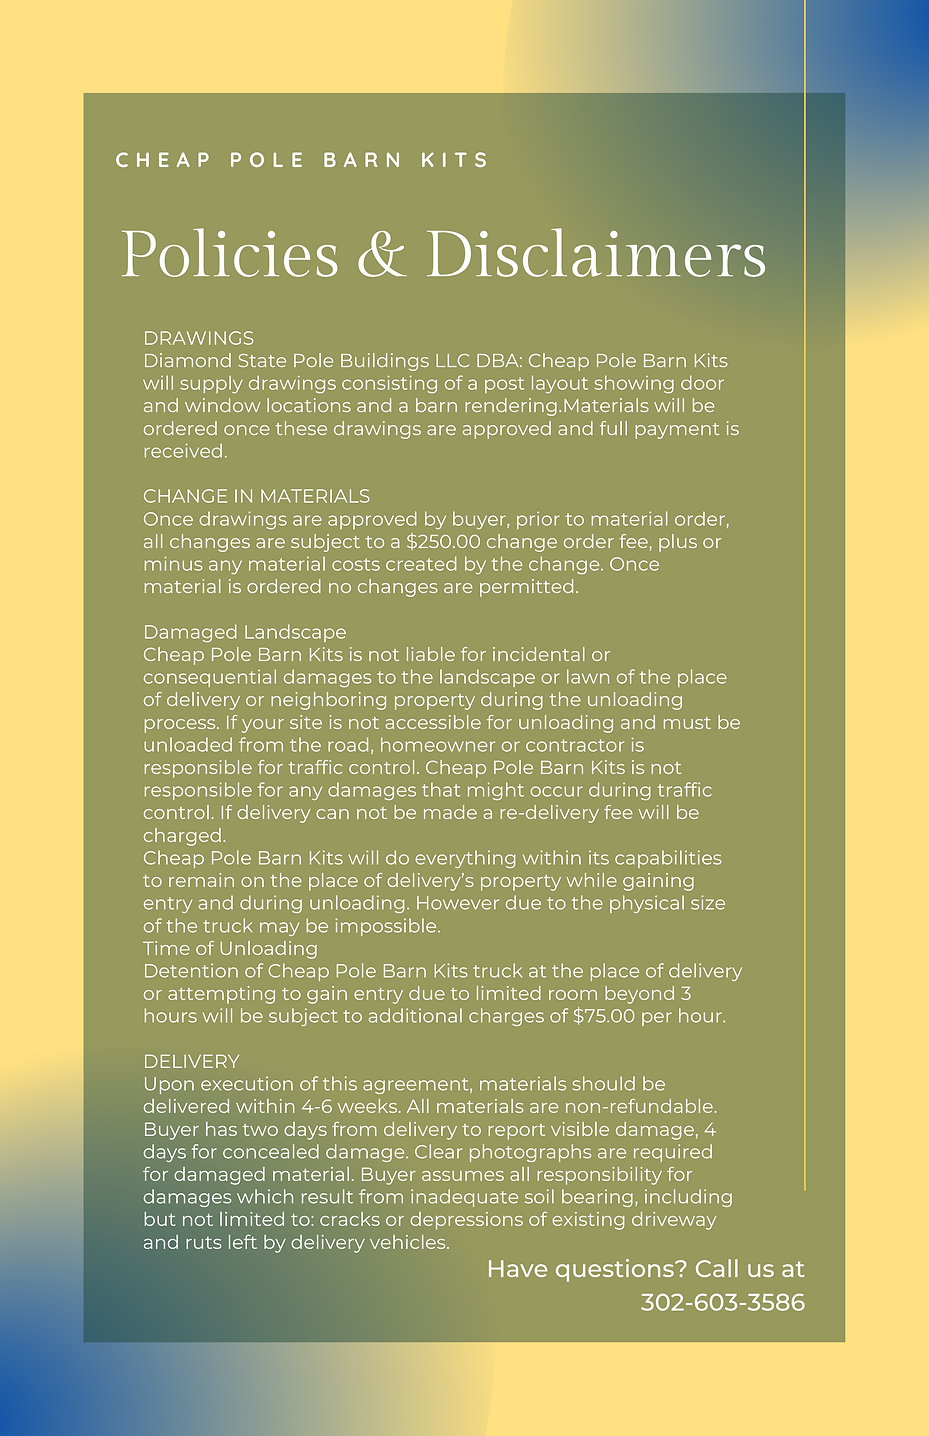 Policies & Disclaimers.png